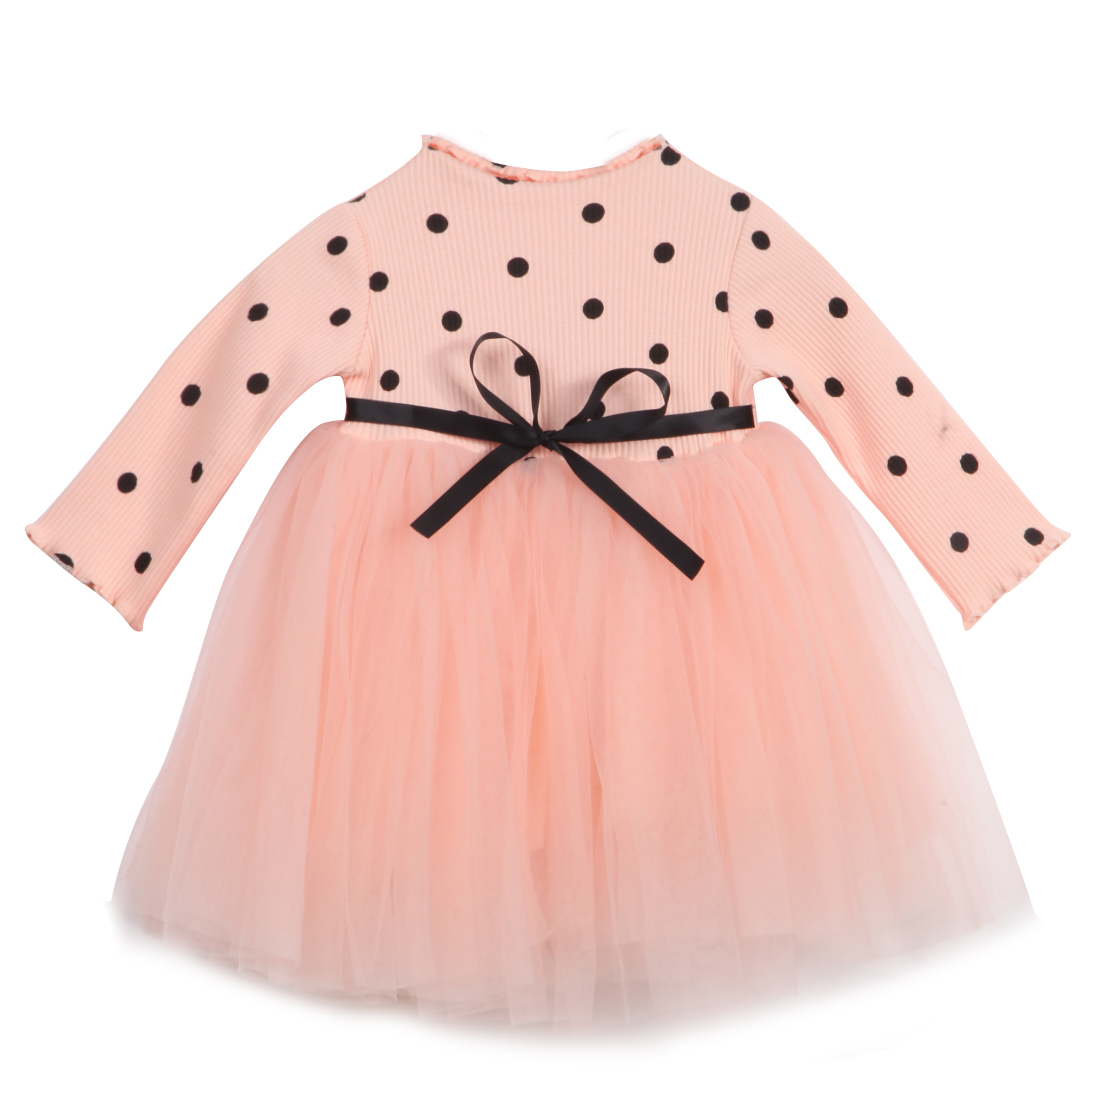 Cute Newborn Kids Baby Girl Clothing Dresses Tutu Cute Ball Summer Polka Dot Lace Tutu Dress Girls Clothes 500ml usb air humidifier essential oil diffuser mist maker fogger mute aroma atomizer air purifier night light for home